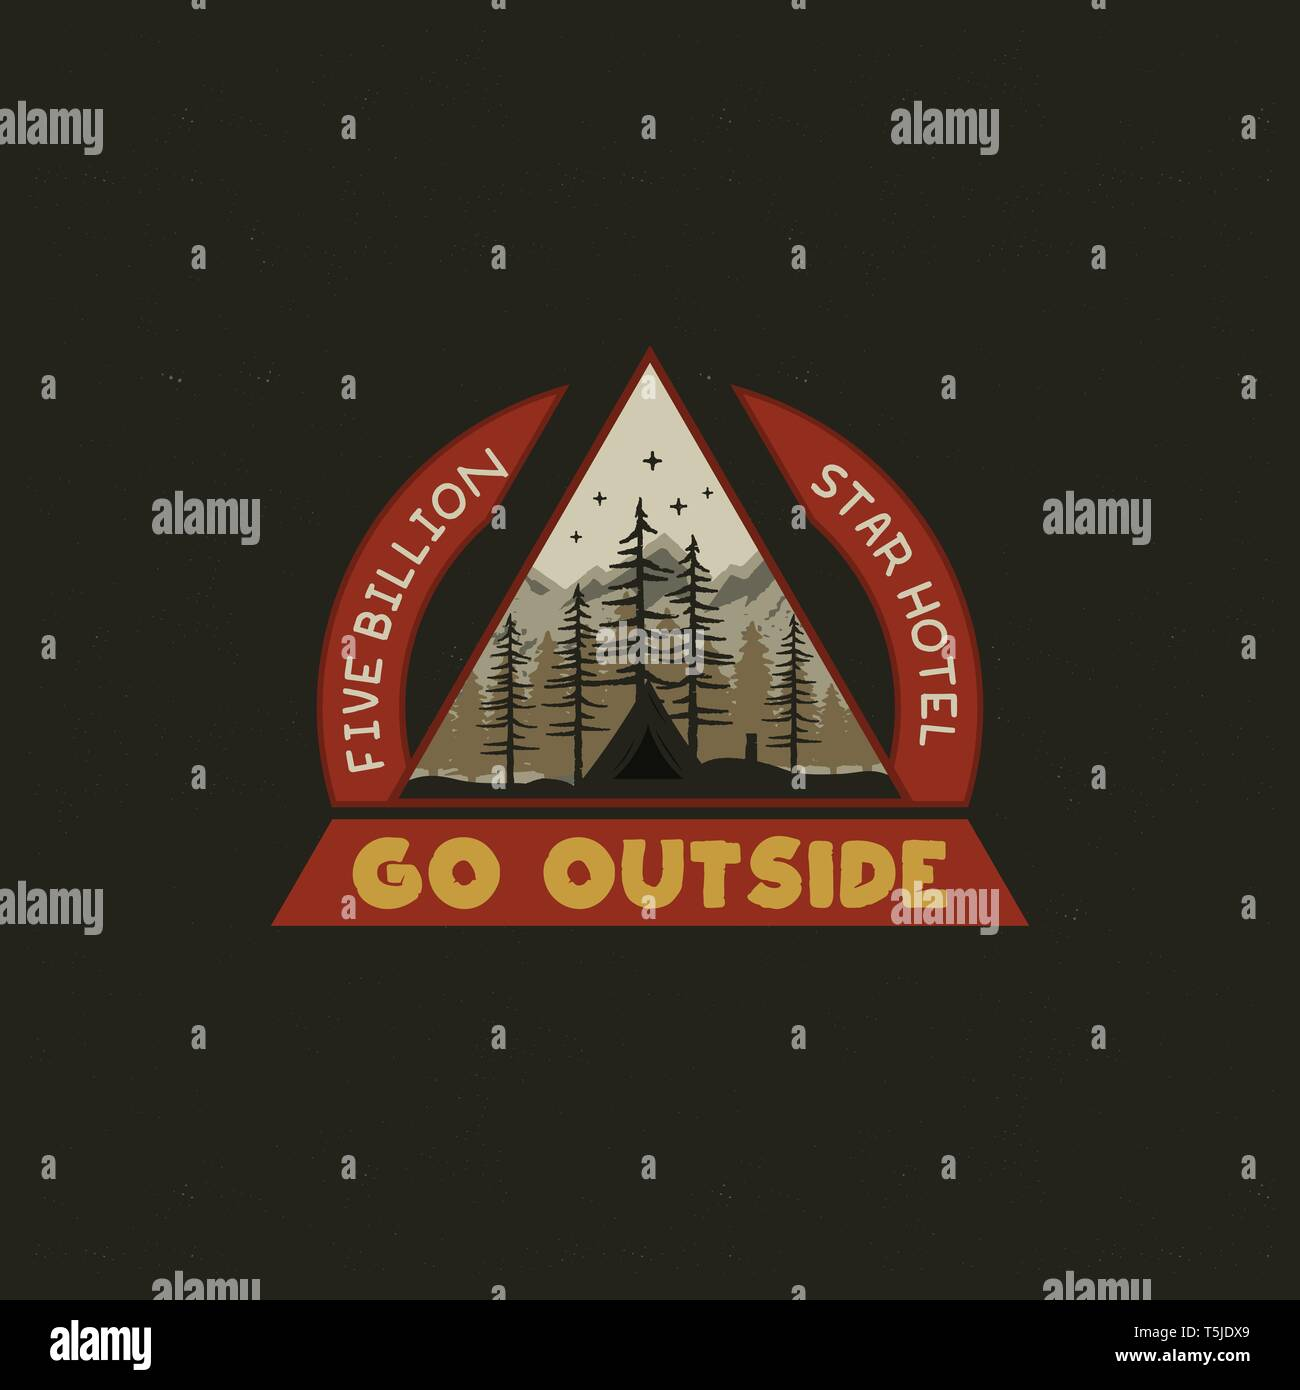 Mountain Camping badge illustration design. Unusual outdoor travel logo graphic with tent, trees and quote - Go outside. Wanderlust old style patch - Stock Vector